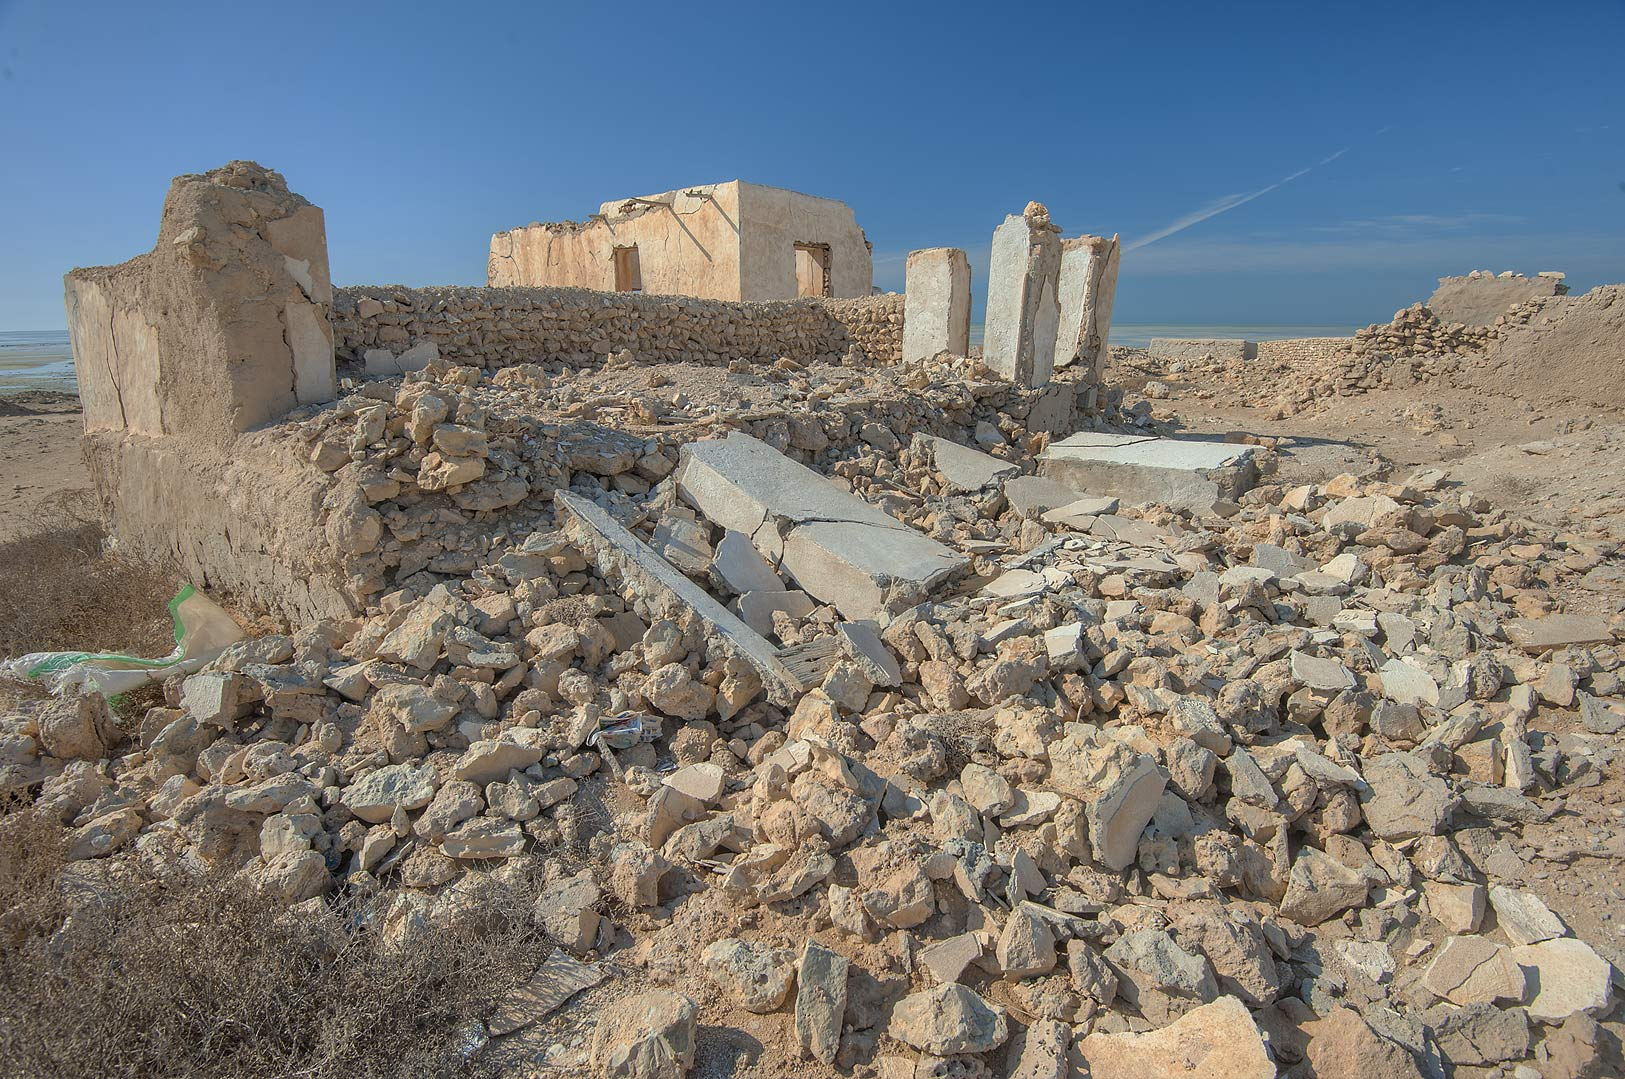 Stone ruins in a village of Al Jumail (Jumayl) west of Ruwais. Northern Qatar